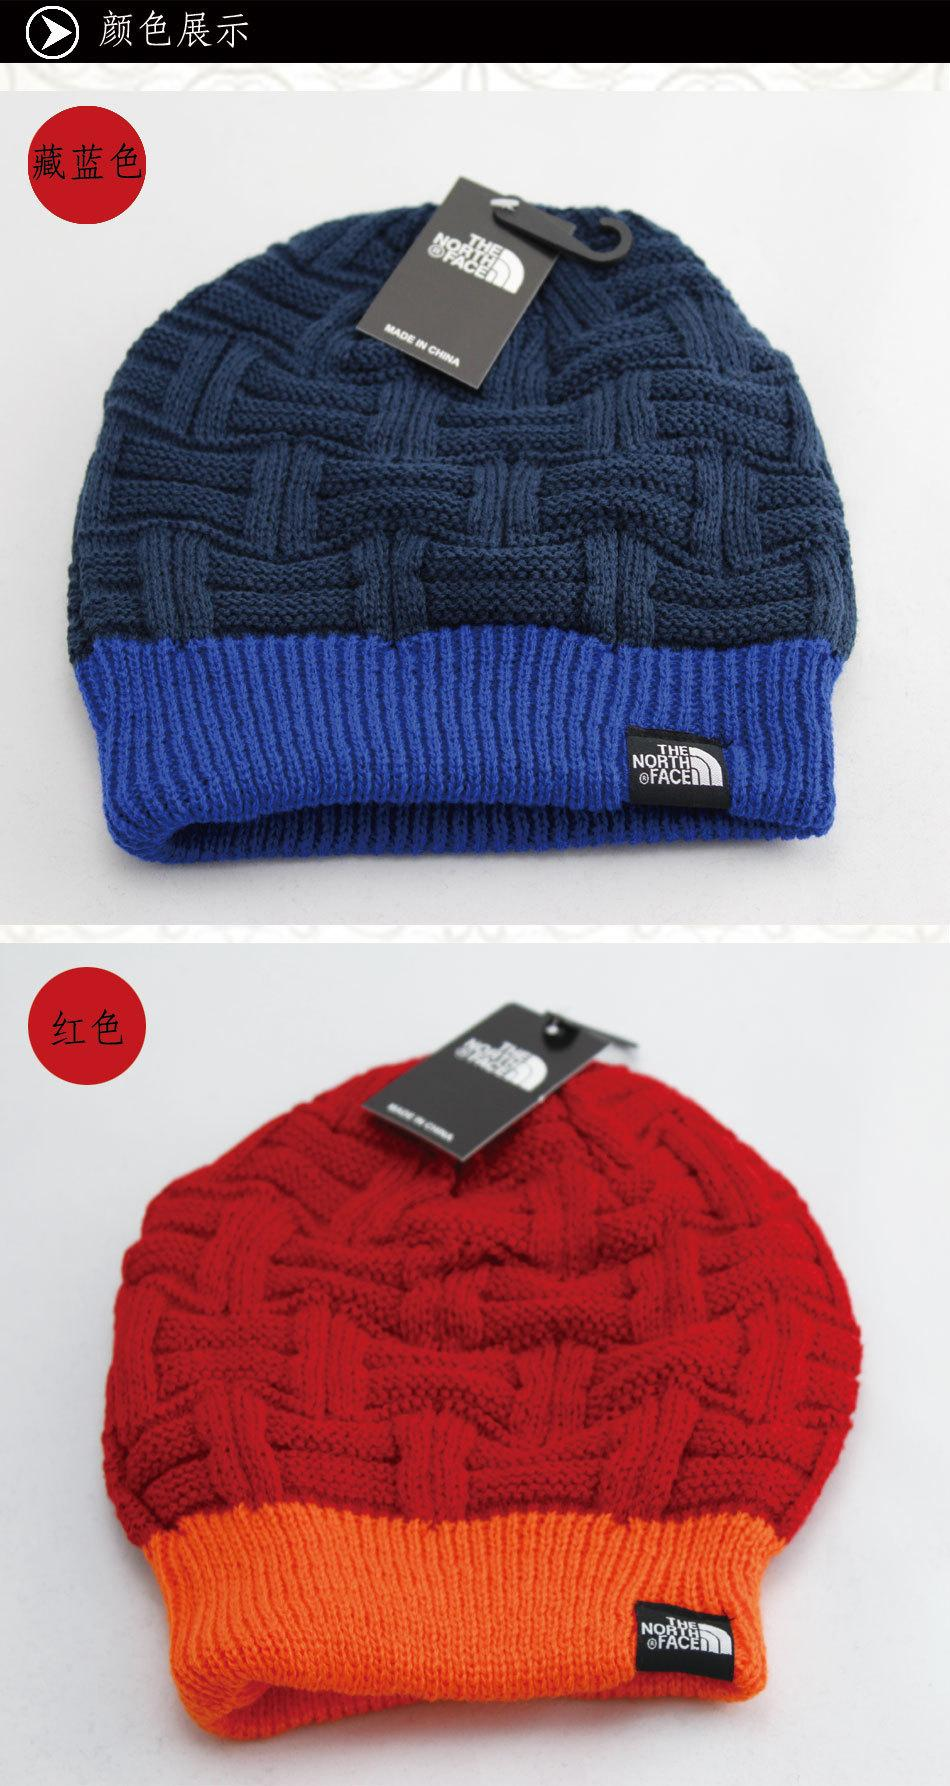 985054f88e291 Men Warm Hats Beanie Hat 2015 Winter Knitting Wool Hat For Unisex ...